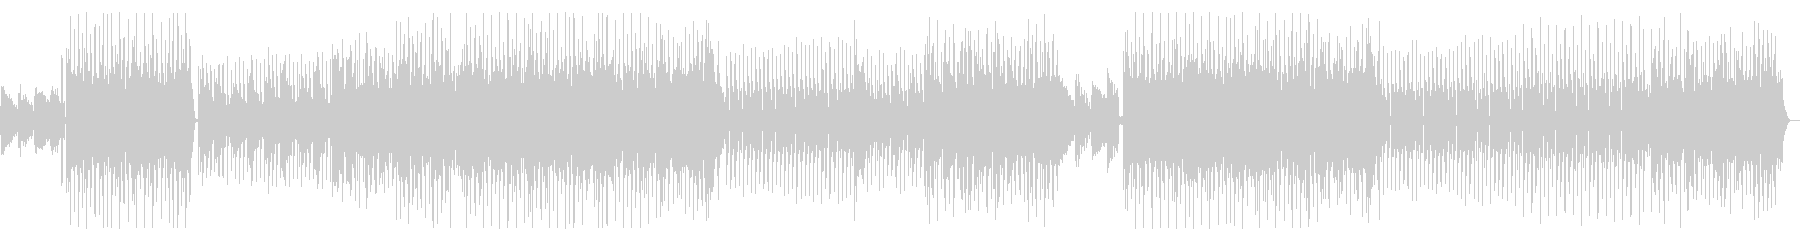 Melodic and gentle fashionable house's unreproduced waveform